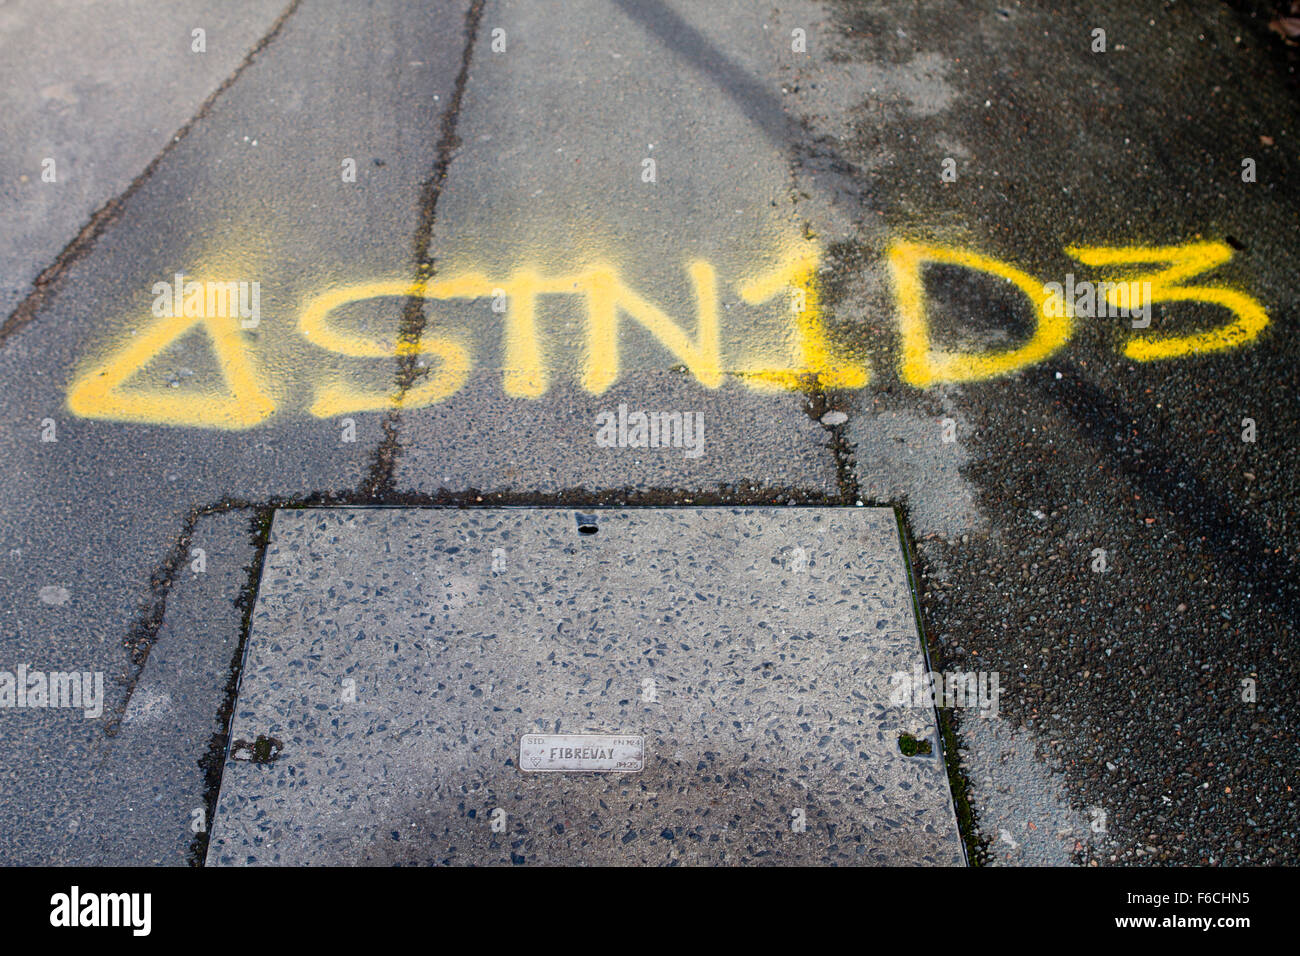 Utilities STN1D3 Pavement Markings in Manchester, UK - Stock Image